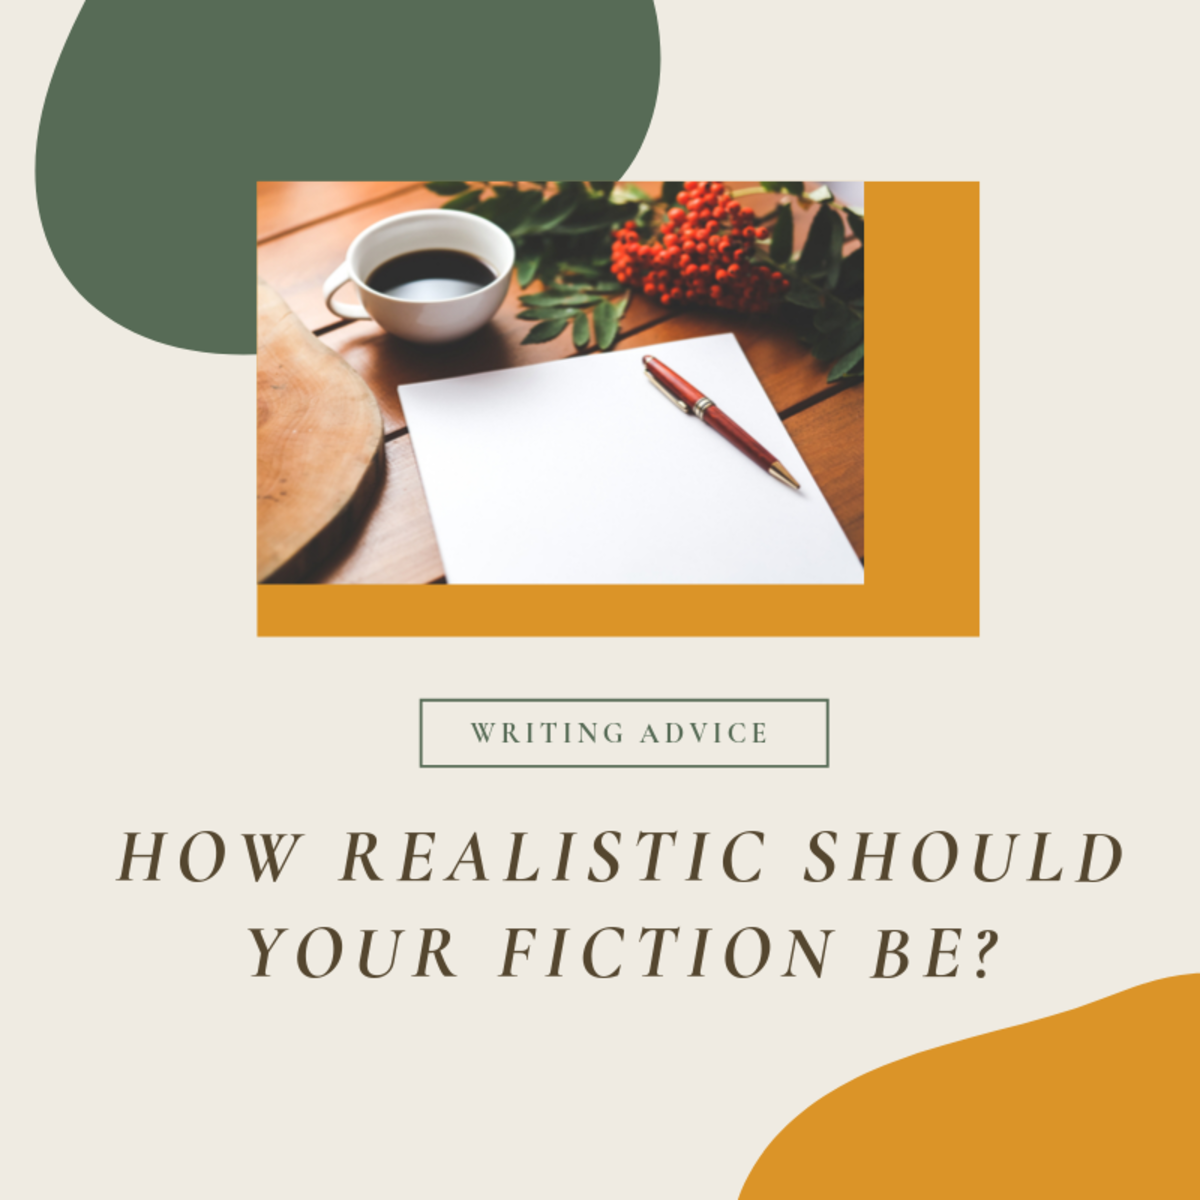 There is room for both realistic and unrealistic expectations when writing fiction.